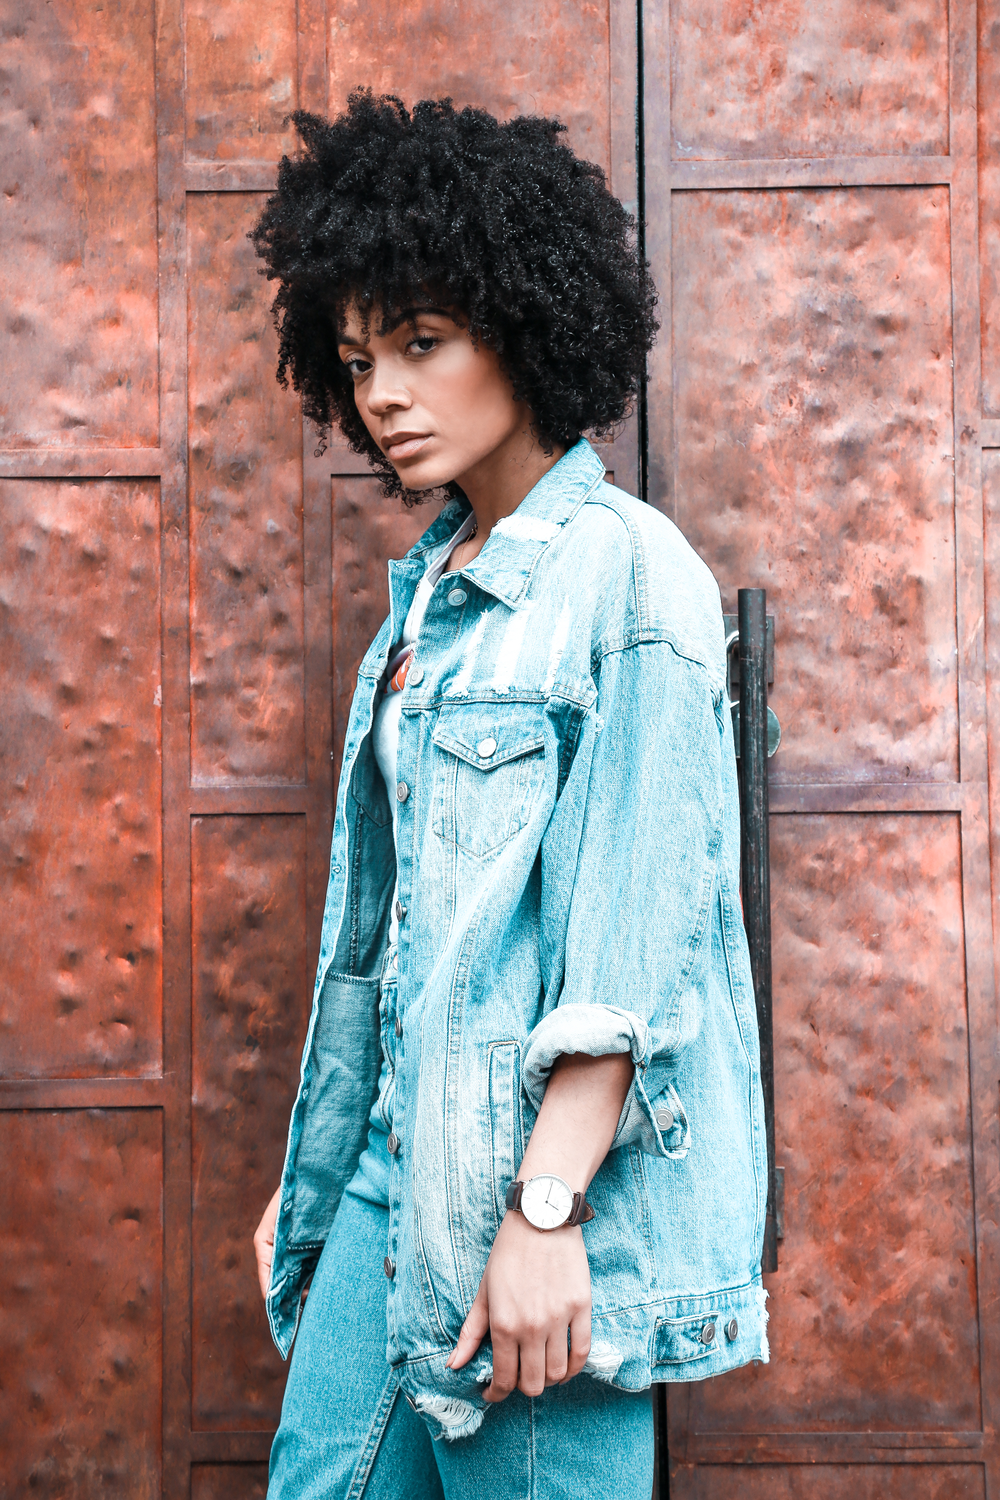 "<strong>KIA MARIE</strong> <a href=""https://www.instagram.com/thenotoriouskia/"" target=""_blank"" rel=""noopener"">@thenotoriouskia</a>  A Brooklyn native with West Coast roots to match, Kia is a fashion stylist, and style and beauty blogger. A Texture Type 6, expect to see Kia rocking her signature look – natural curls with a bold red lip."